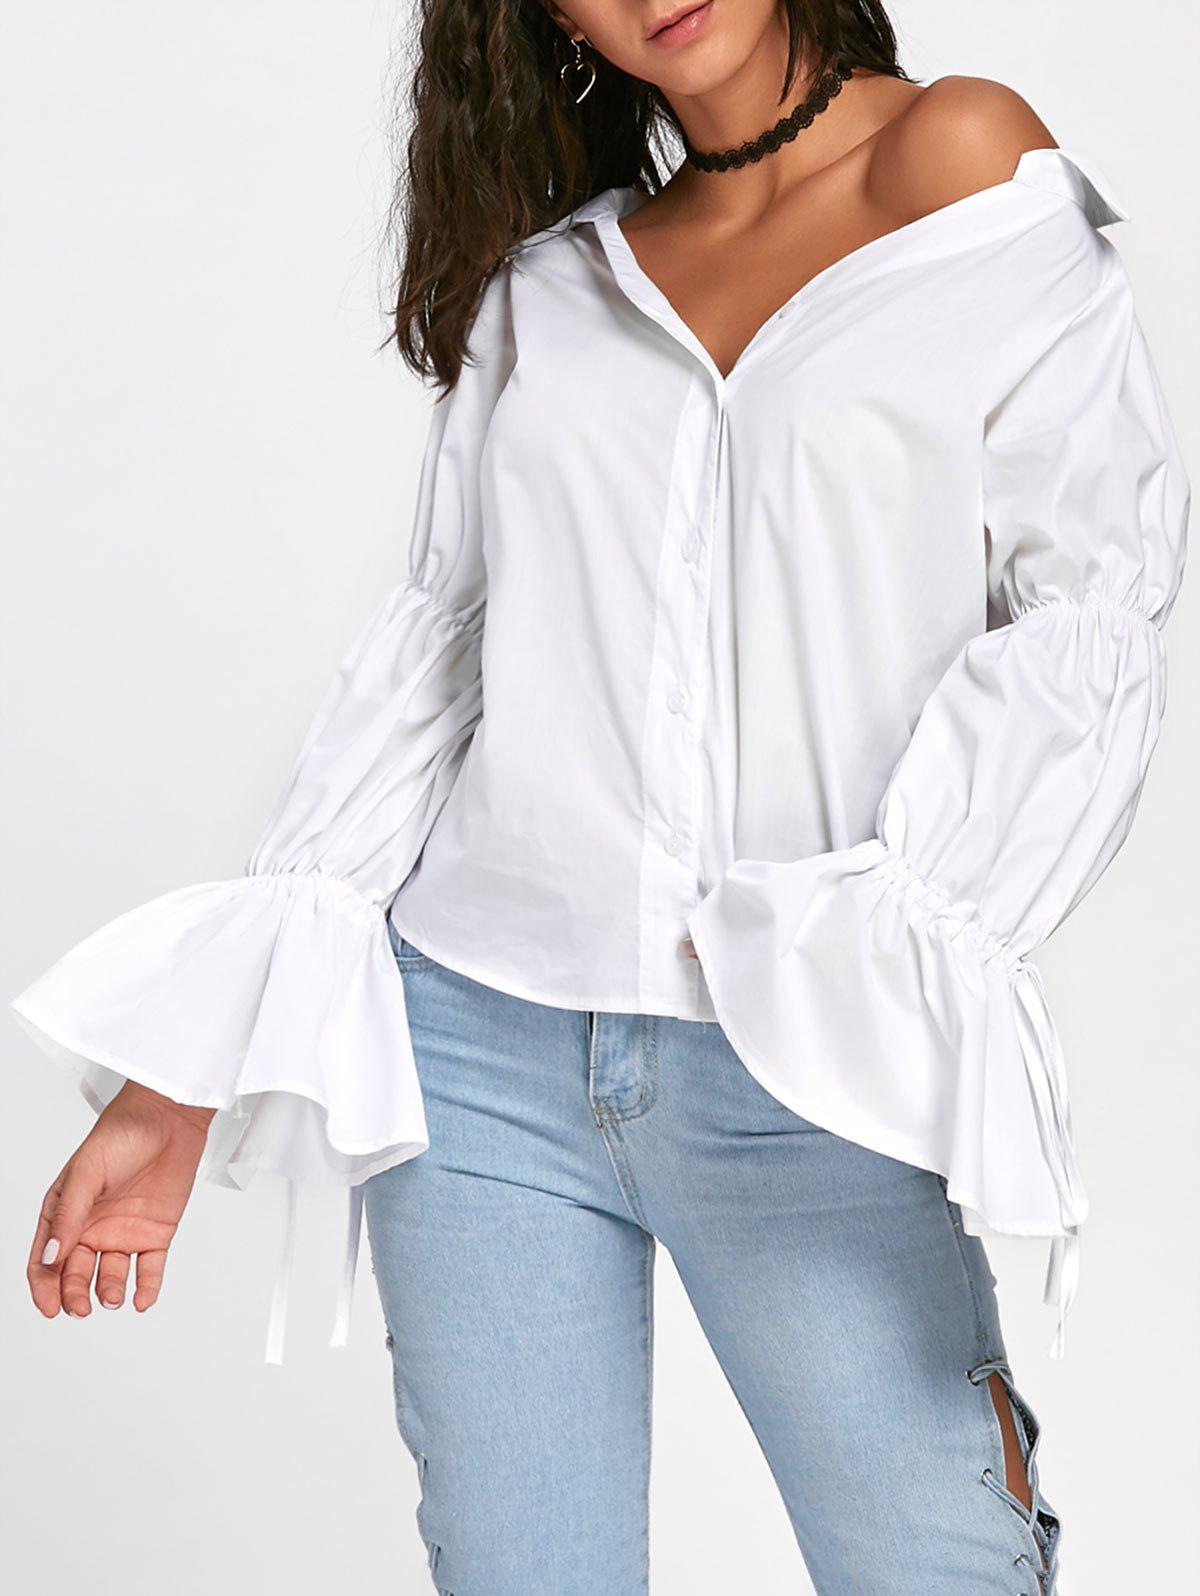 Convertible Oversized Bell Sleeve ShirtWOMEN<br><br>Size: M; Color: WHITE; Style: Fashion; Material: Cotton,Polyester; Shirt Length: Regular; Sleeve Length: Full; Sleeve Type: Flare Sleeve; Collar: Convertible Collar; Pattern Type: Solid; Season: Fall,Spring; Weight: 0.2800kg; Package Contents: 1 x Shirt;